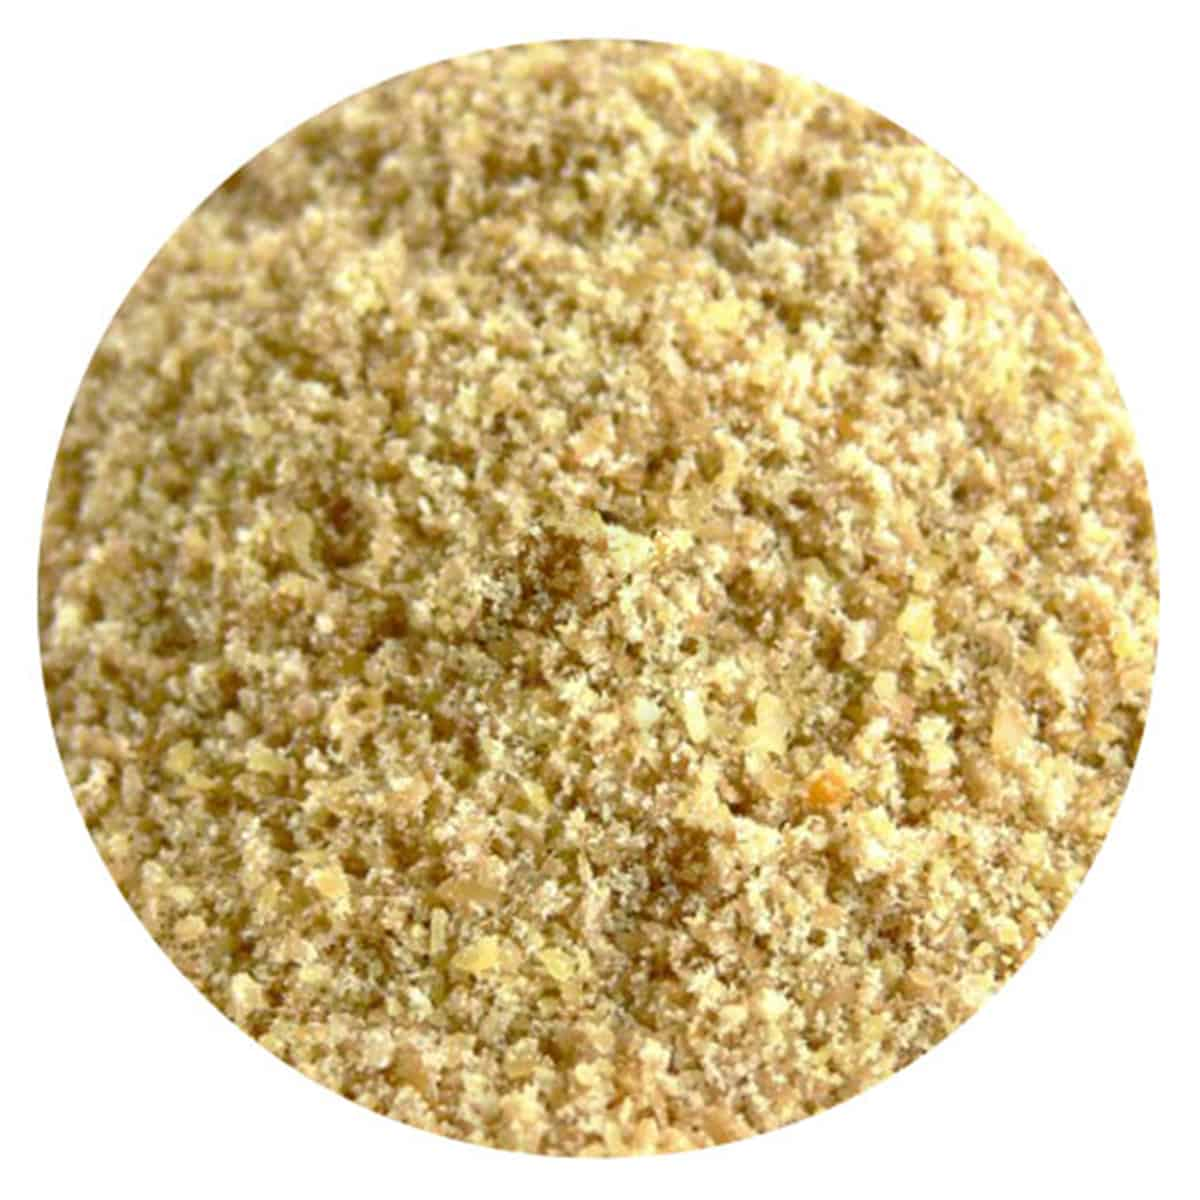 Buy IAG Foods Flax Seeds (Crushed) - 1 kg